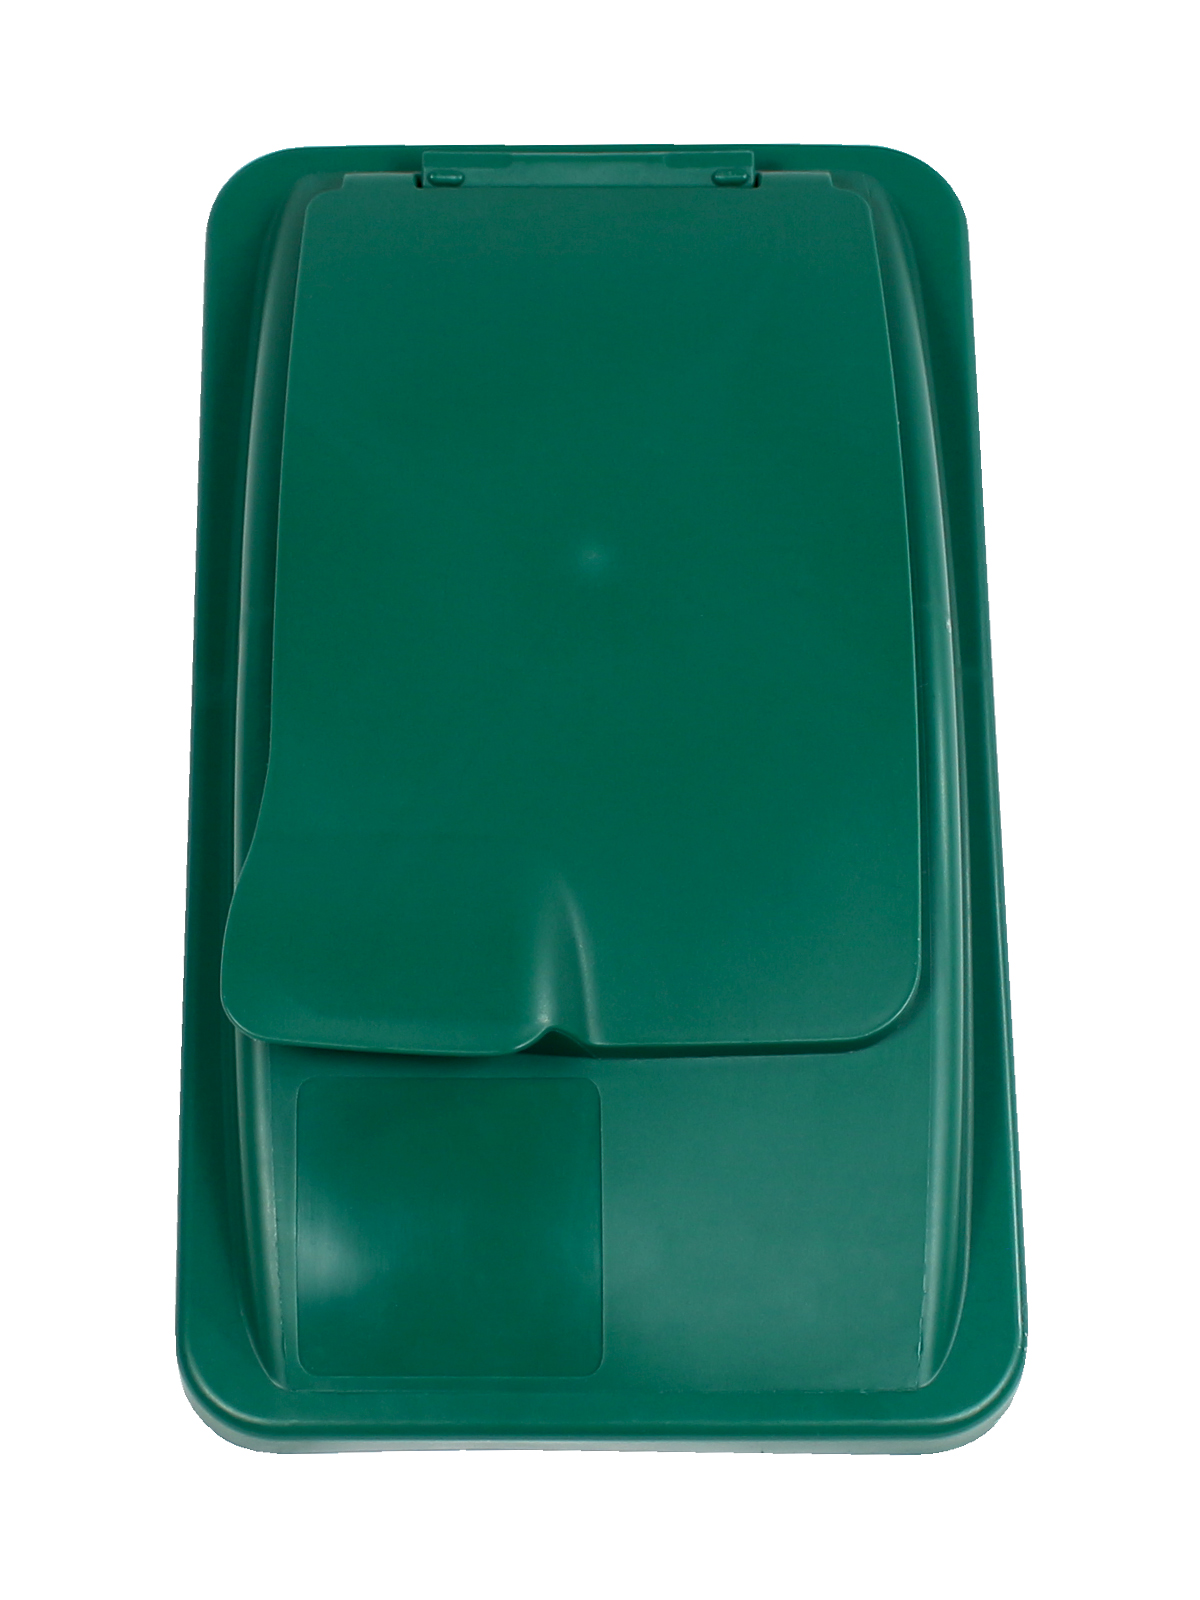 WASTE WATCHER - Single - Lid - Solid Lift - Dark Green